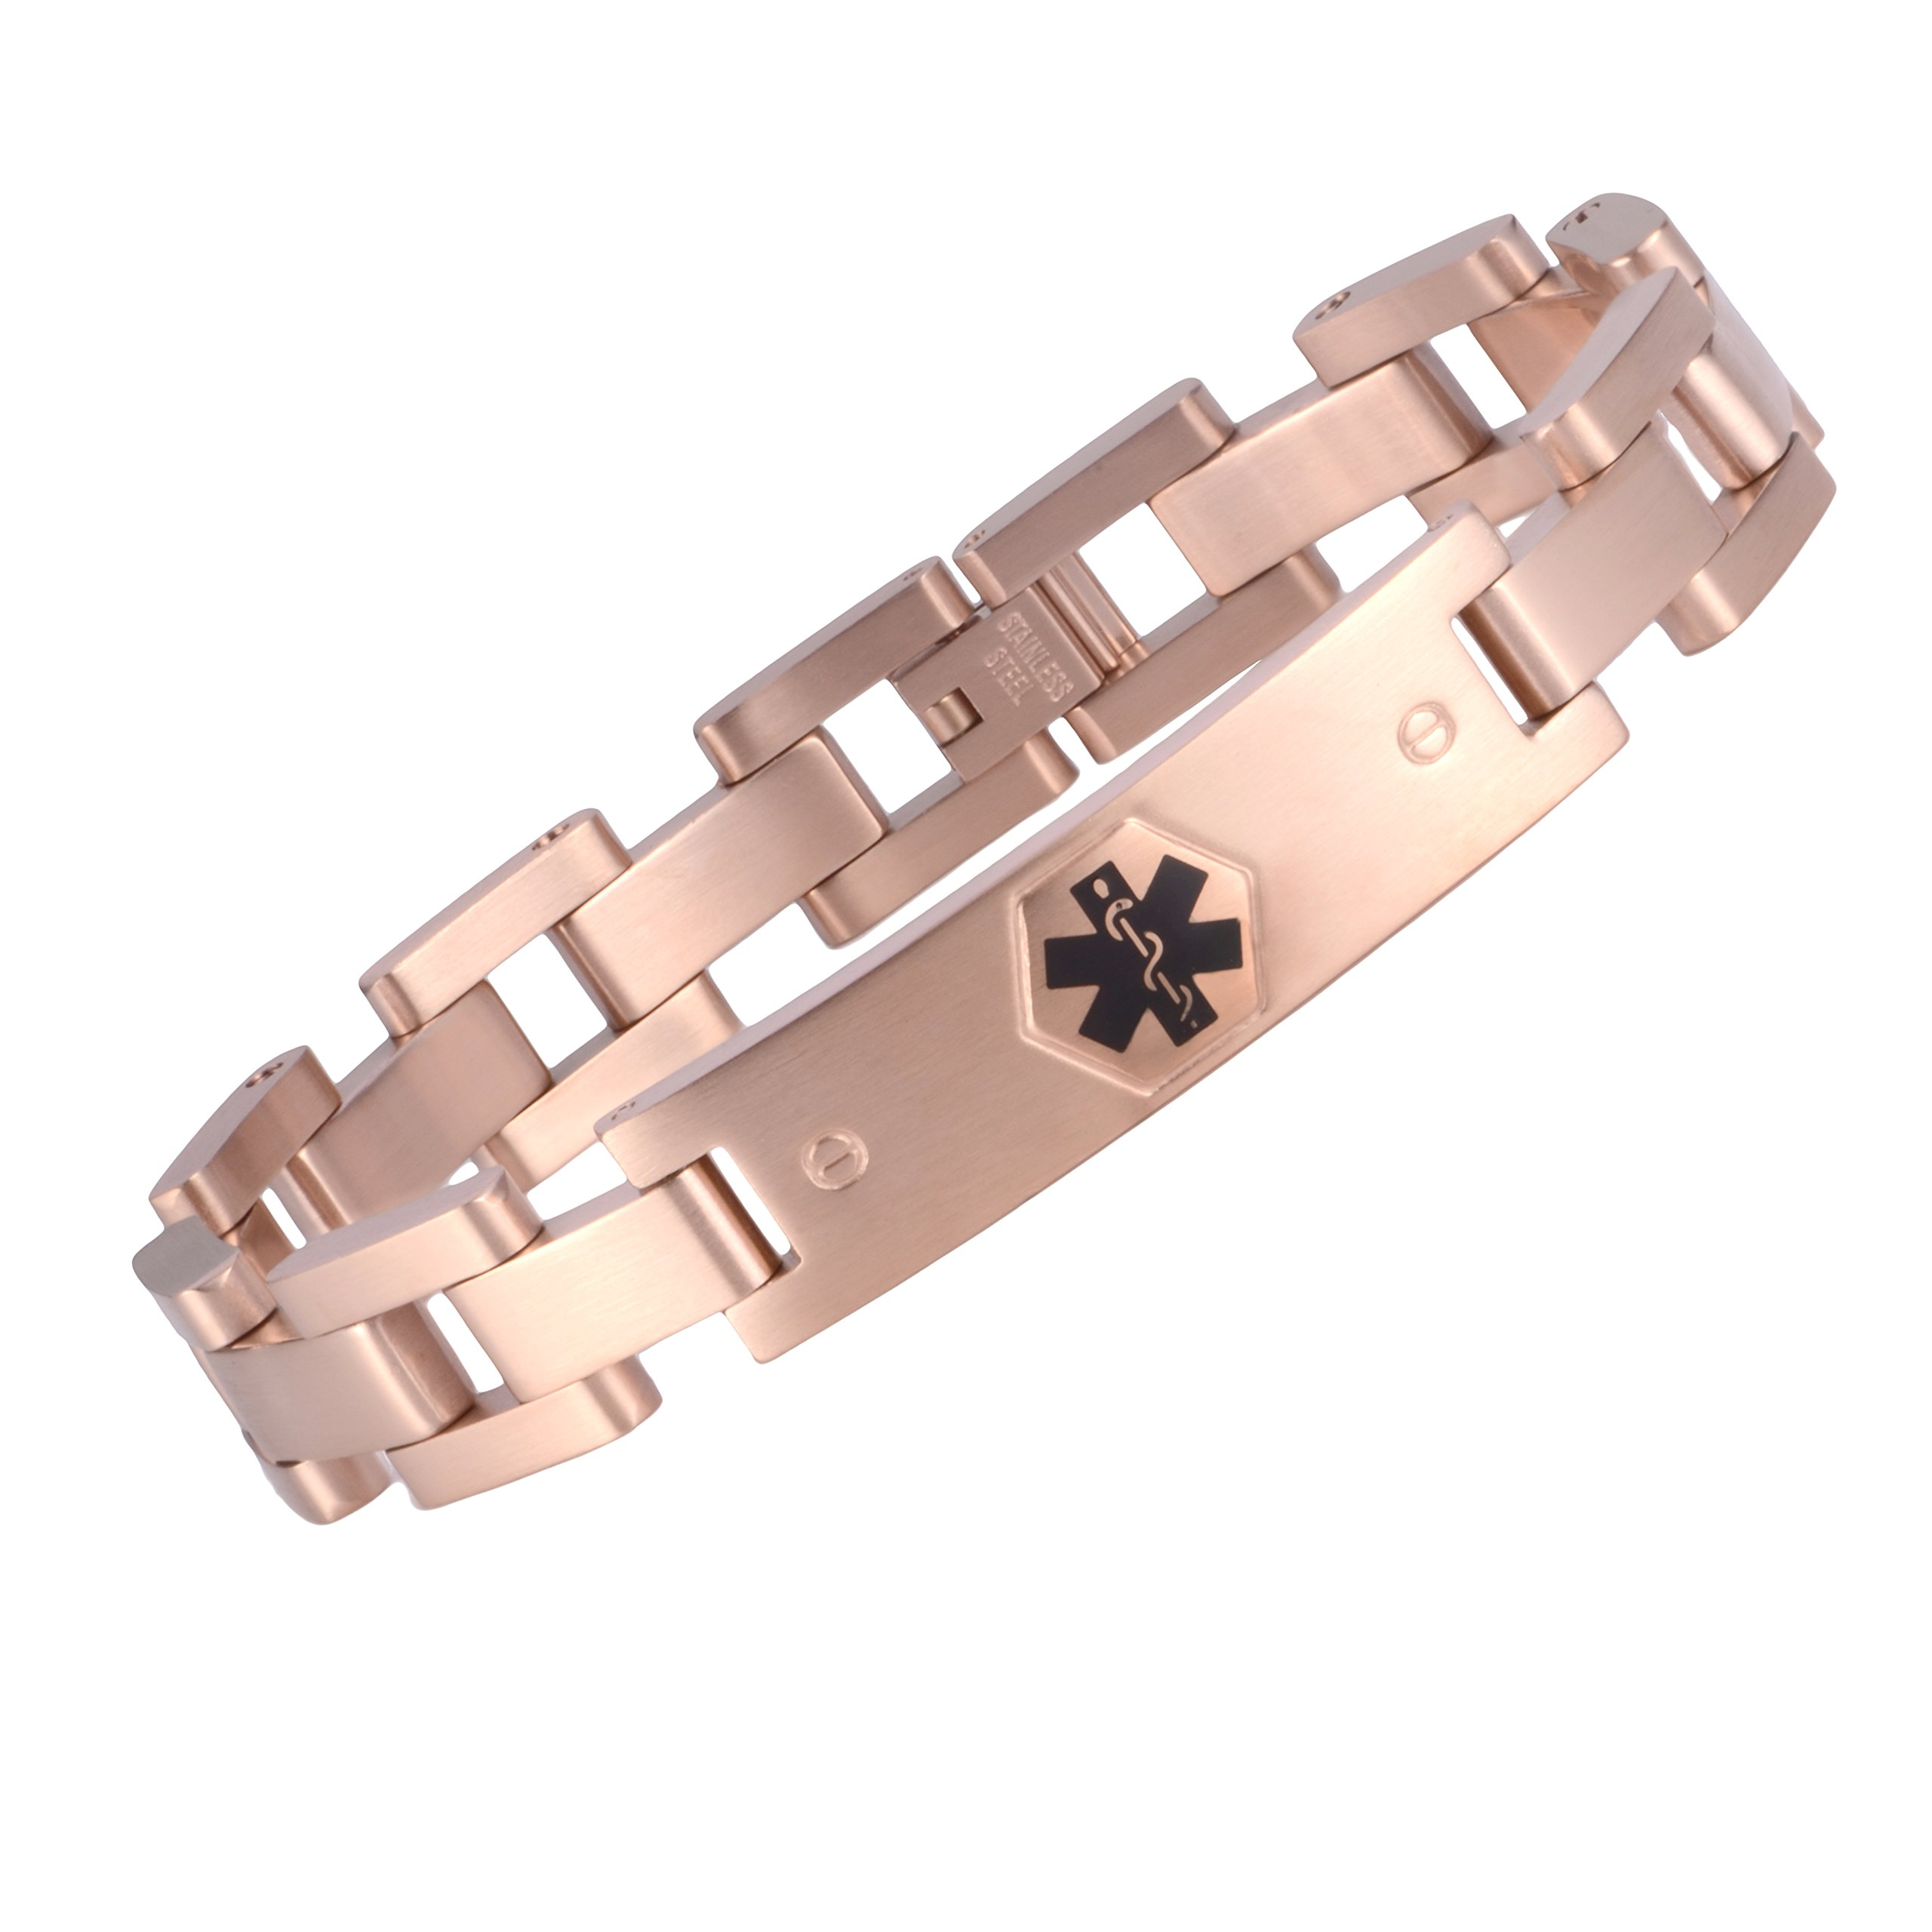 Tarring The military style medical id bracelet jewelry for men and women(ROSE GOLD)(8.5)